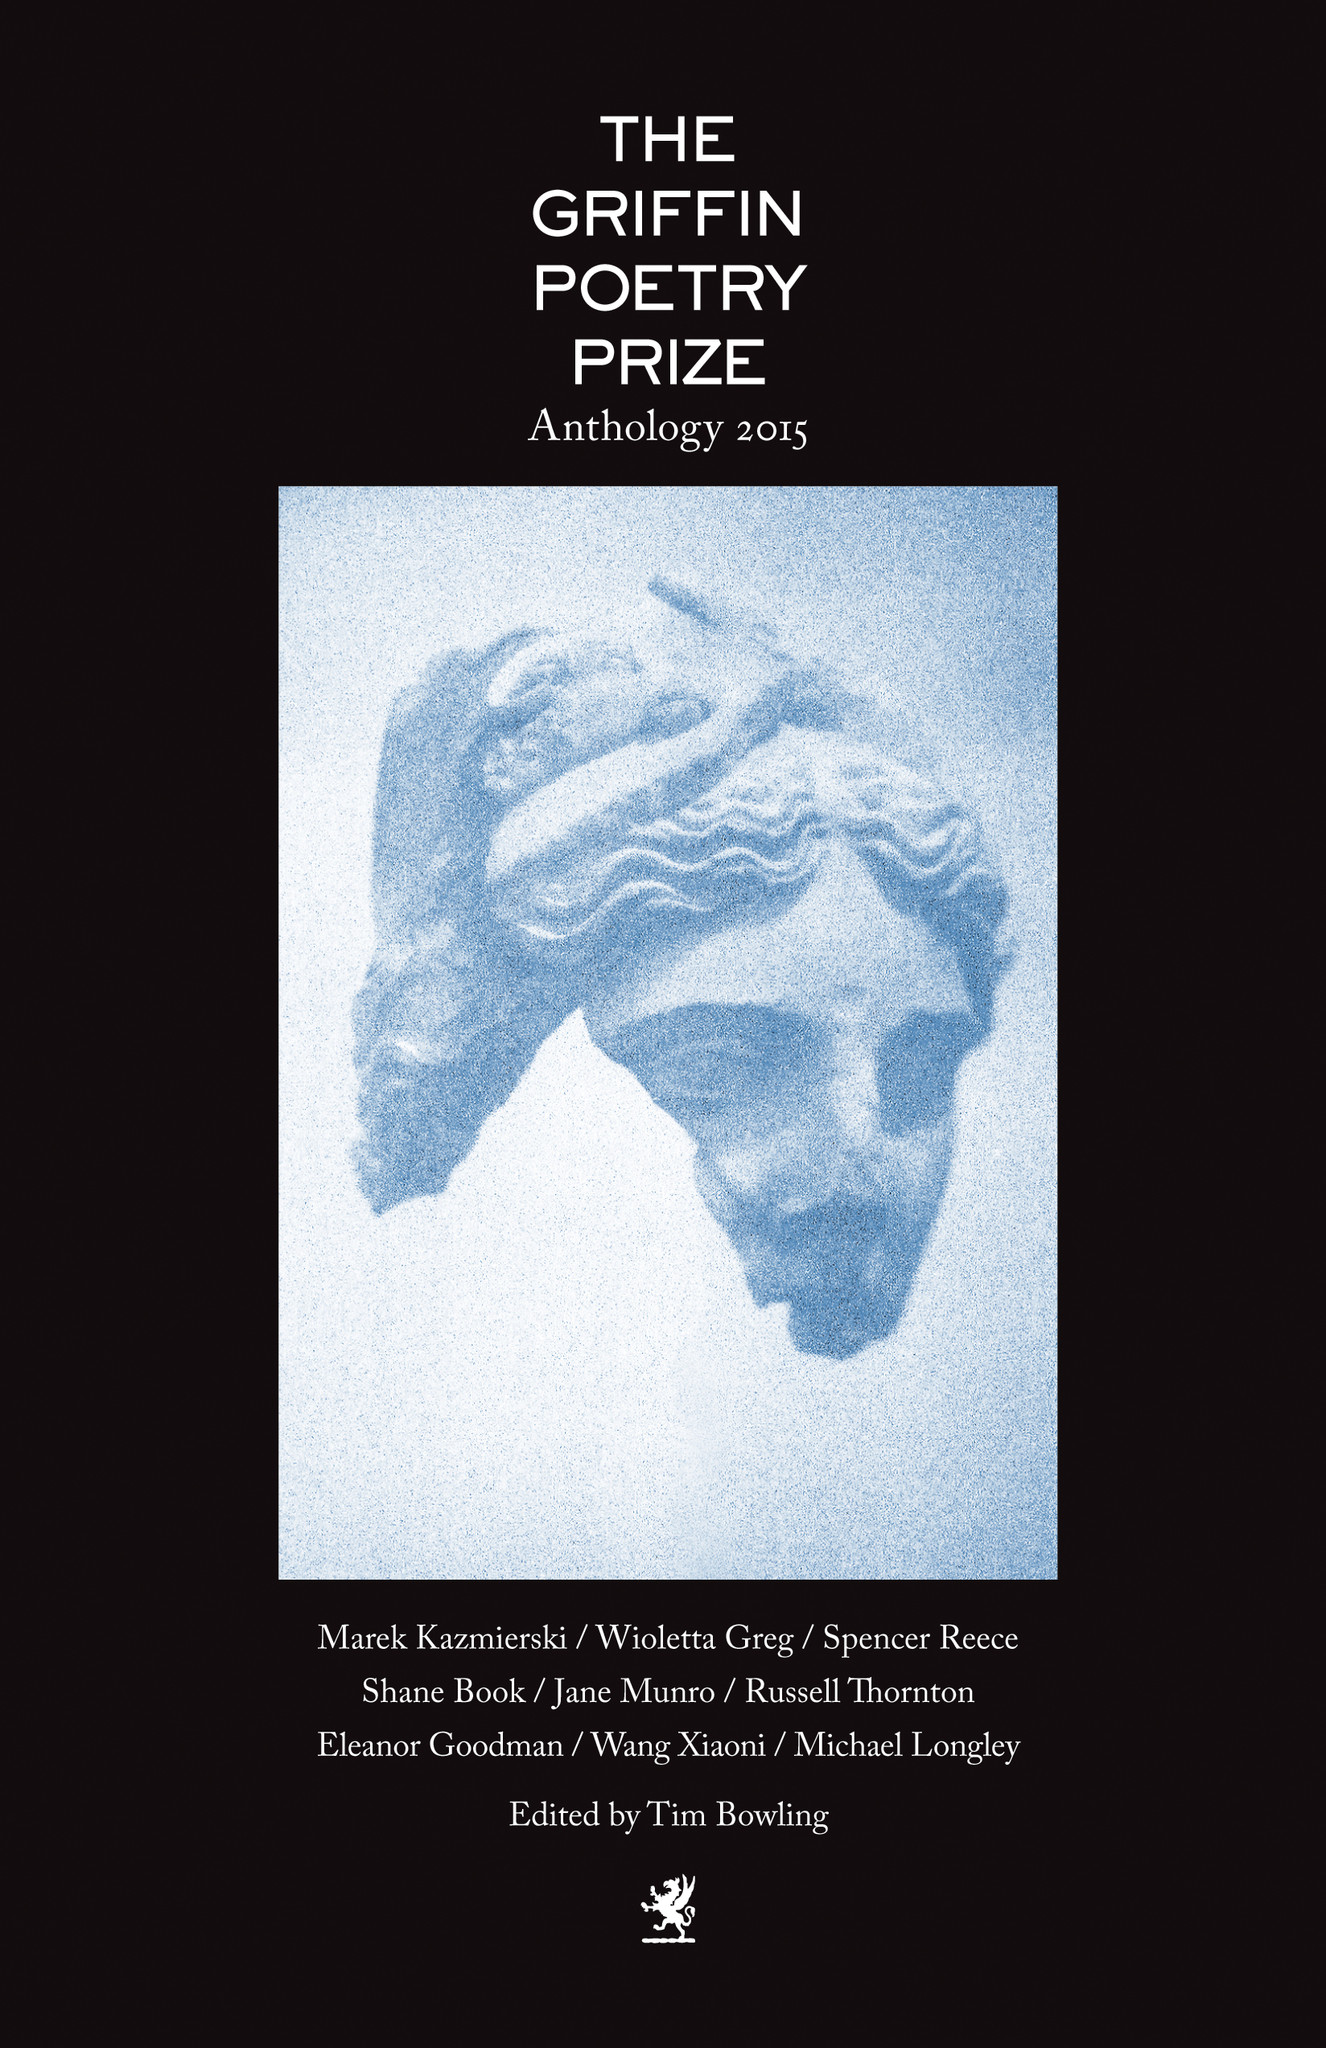 THE 2015 GRIFFIN POETRY PRIZE ANTHOLOGY